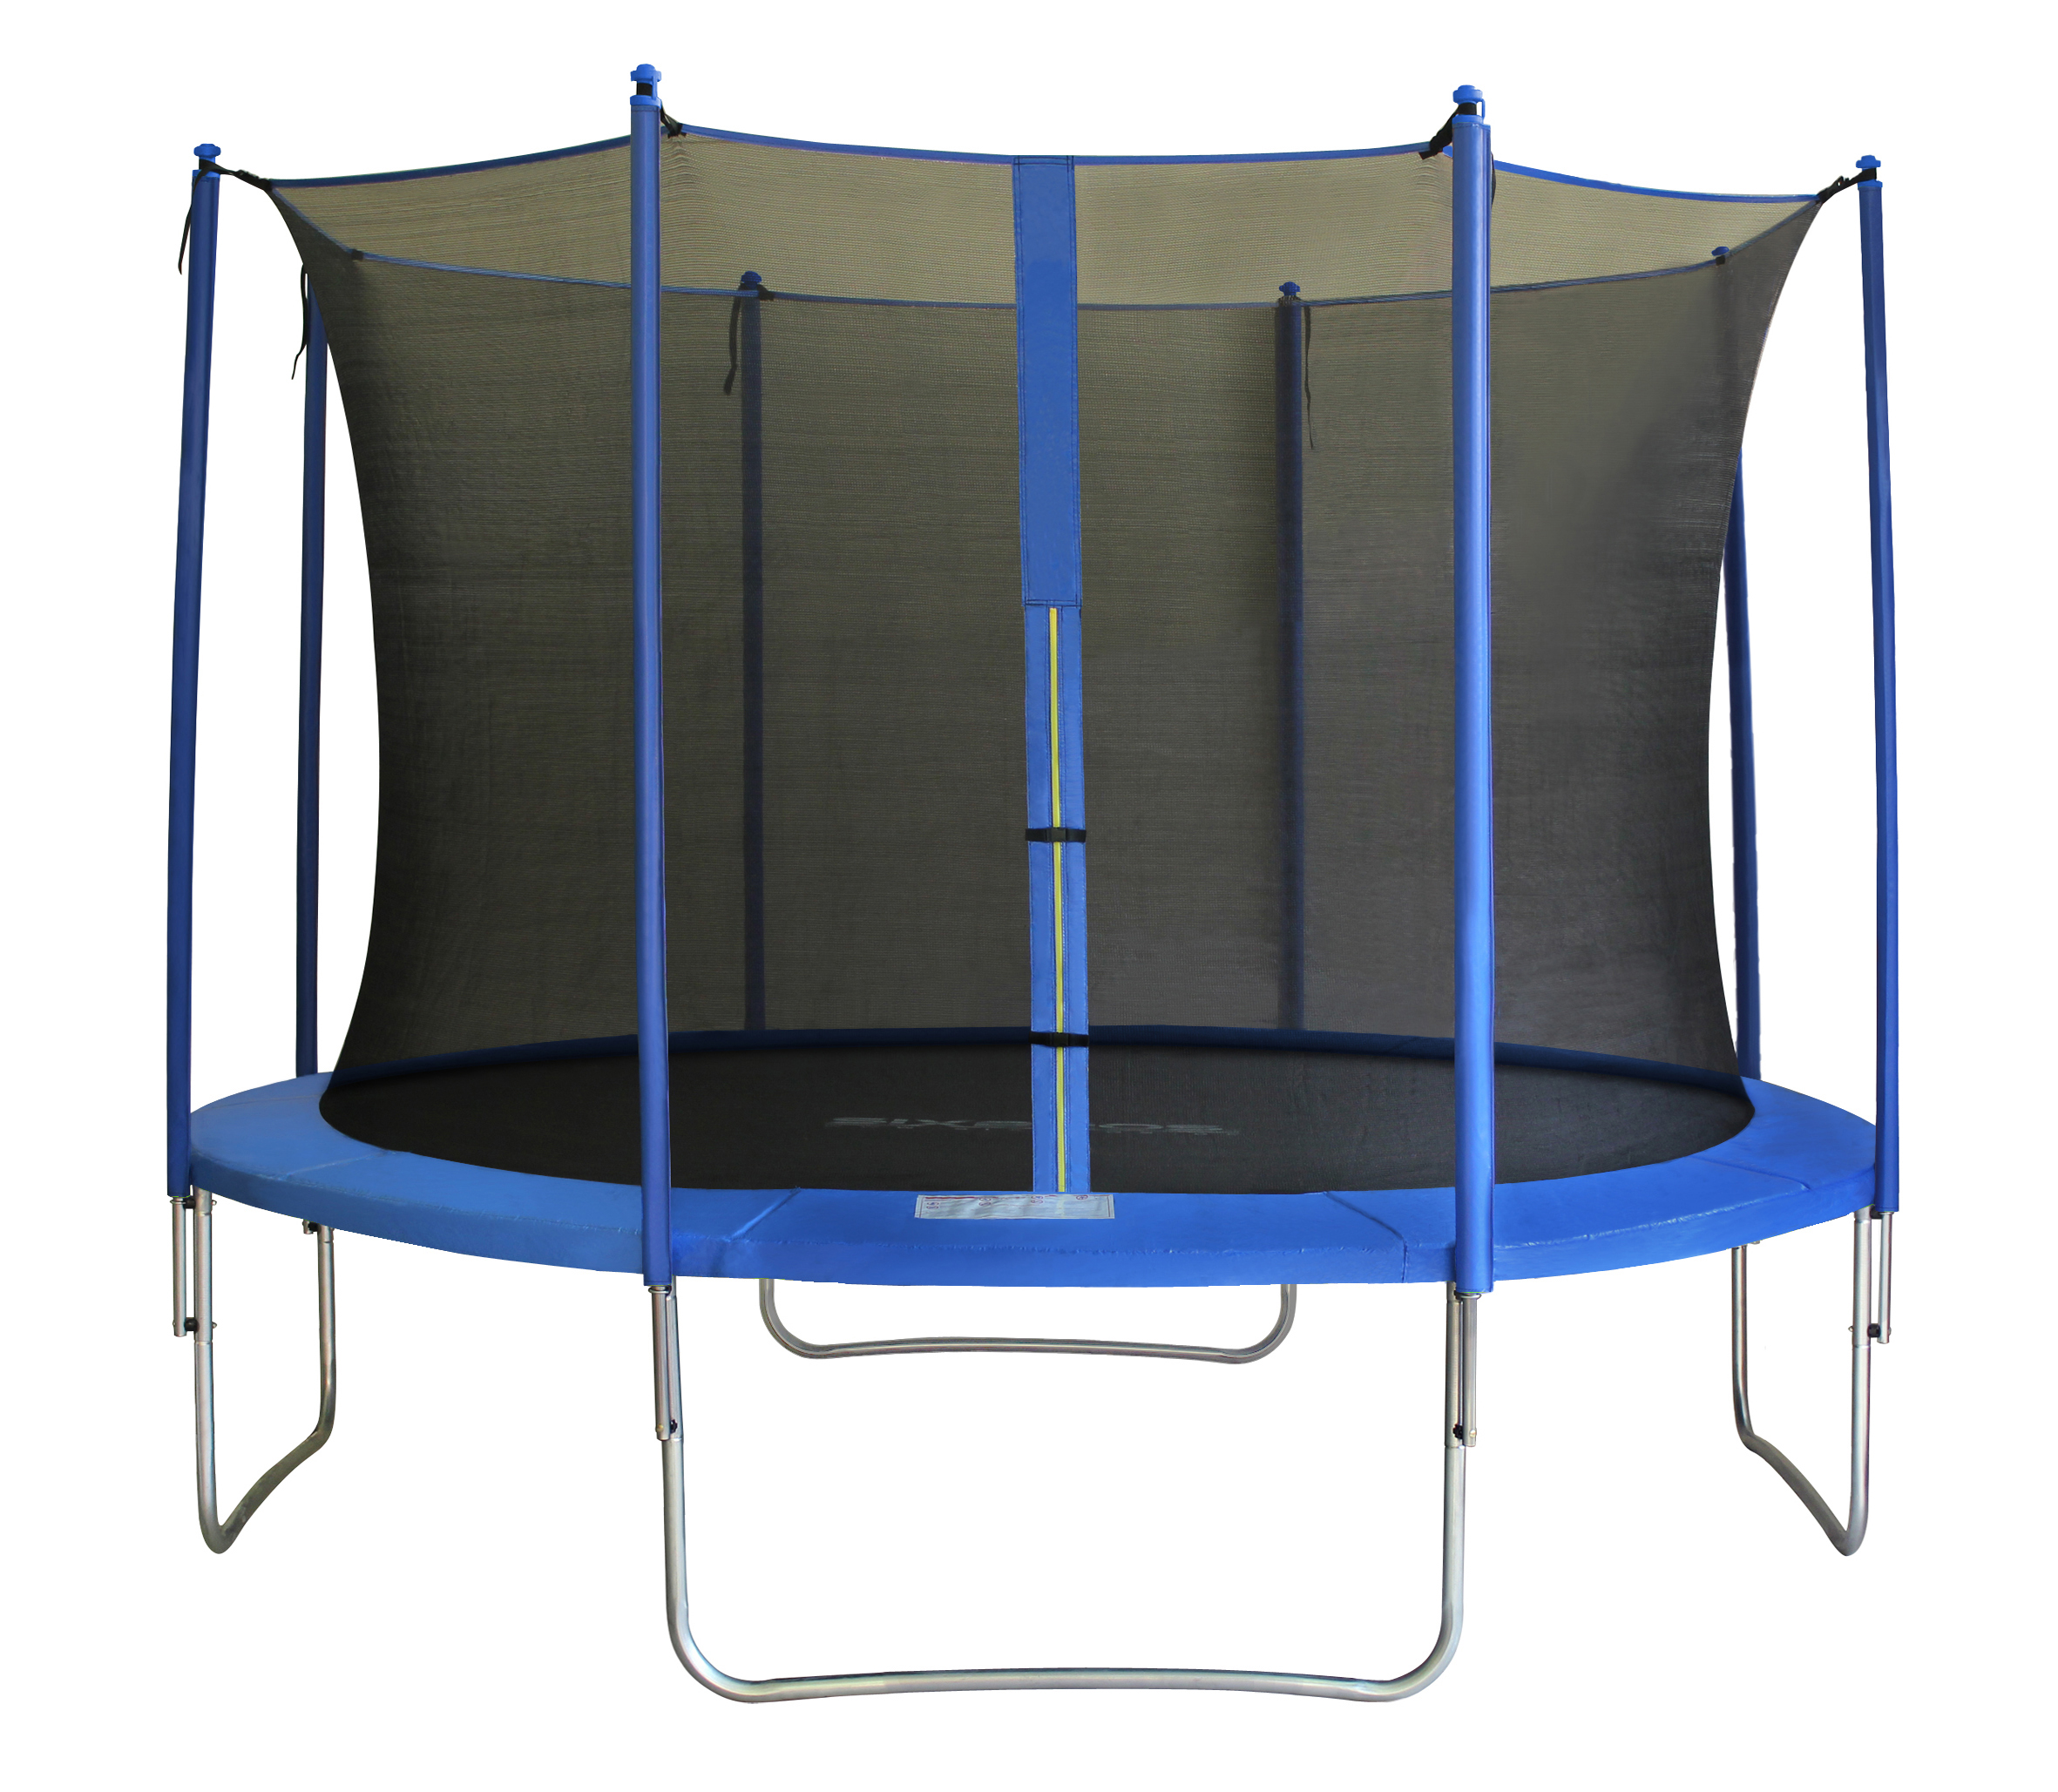 Sixbros sixjump trampoline de jardin filet a l int rieur for Trampoline interieur